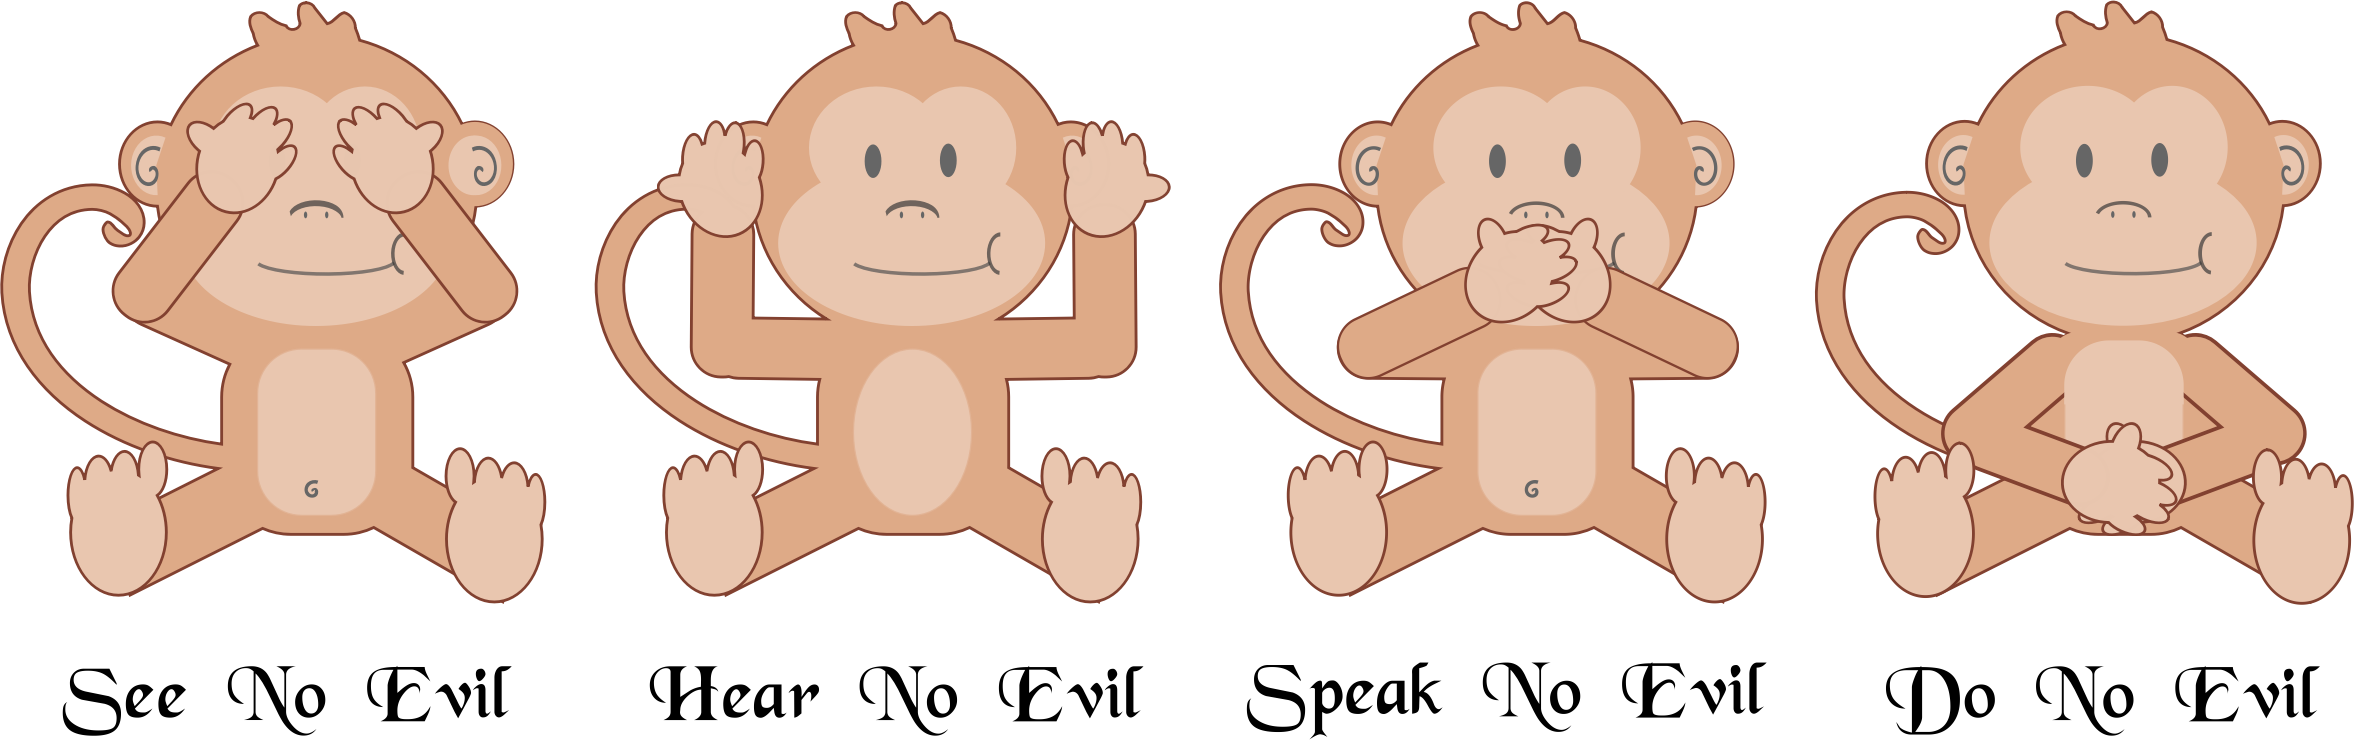 Monkeys clipart number. The four wise big